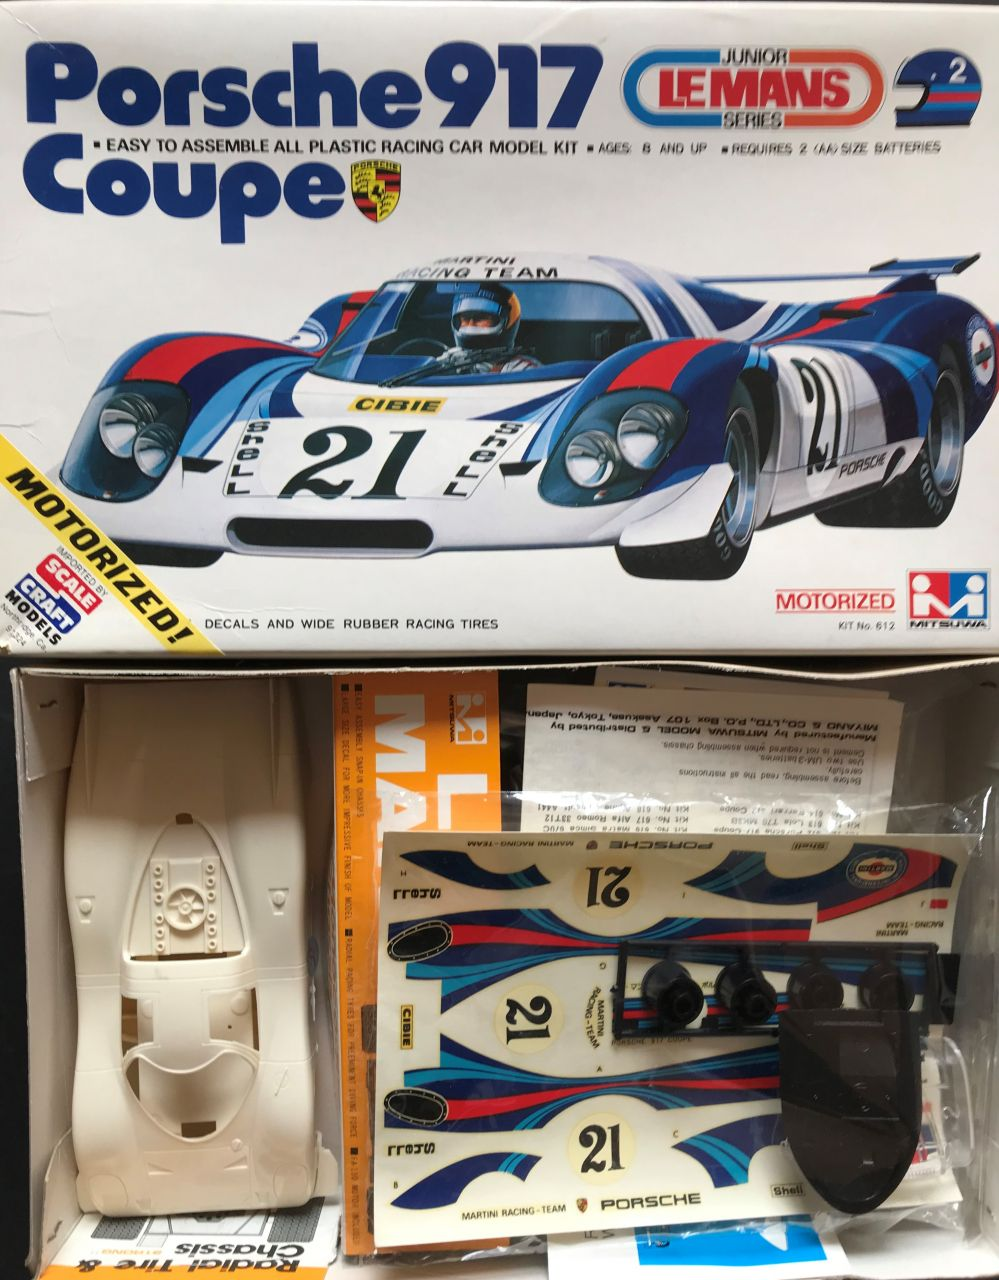 Mitsuwa 612 Porsche 917 Coupe Martini Racing